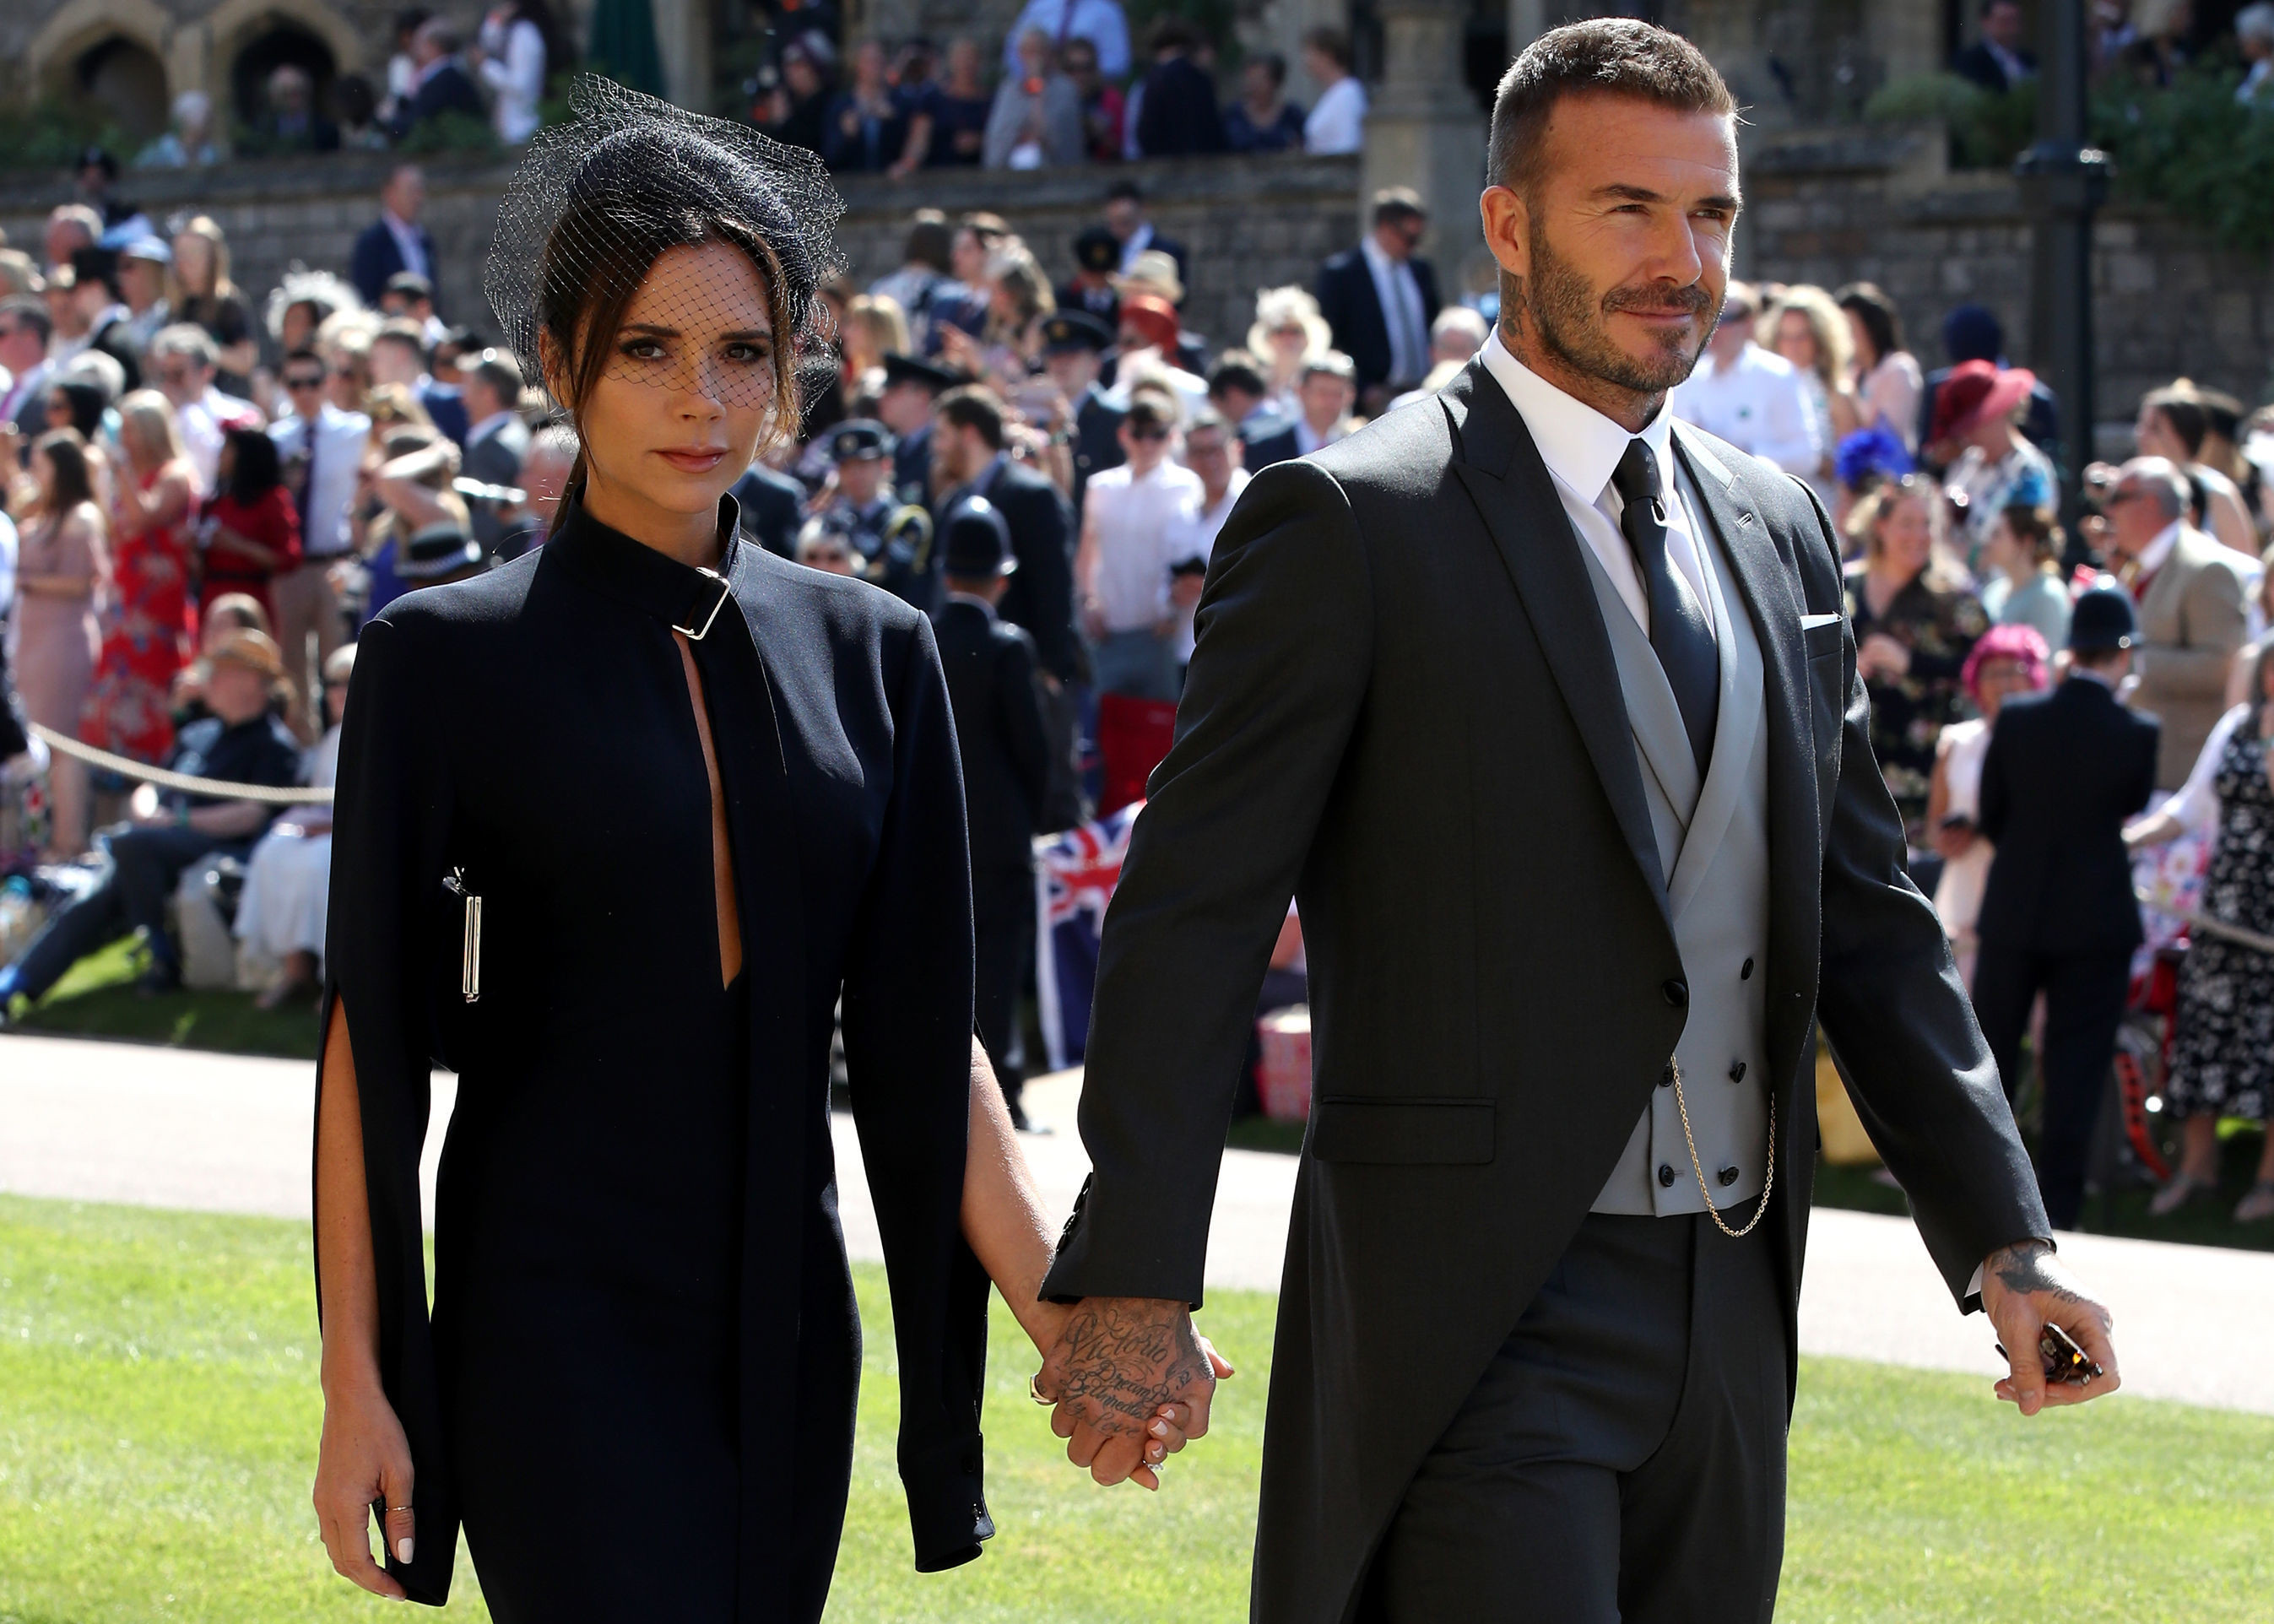 Victoria Beckham Opens Up About The Royal Wedding